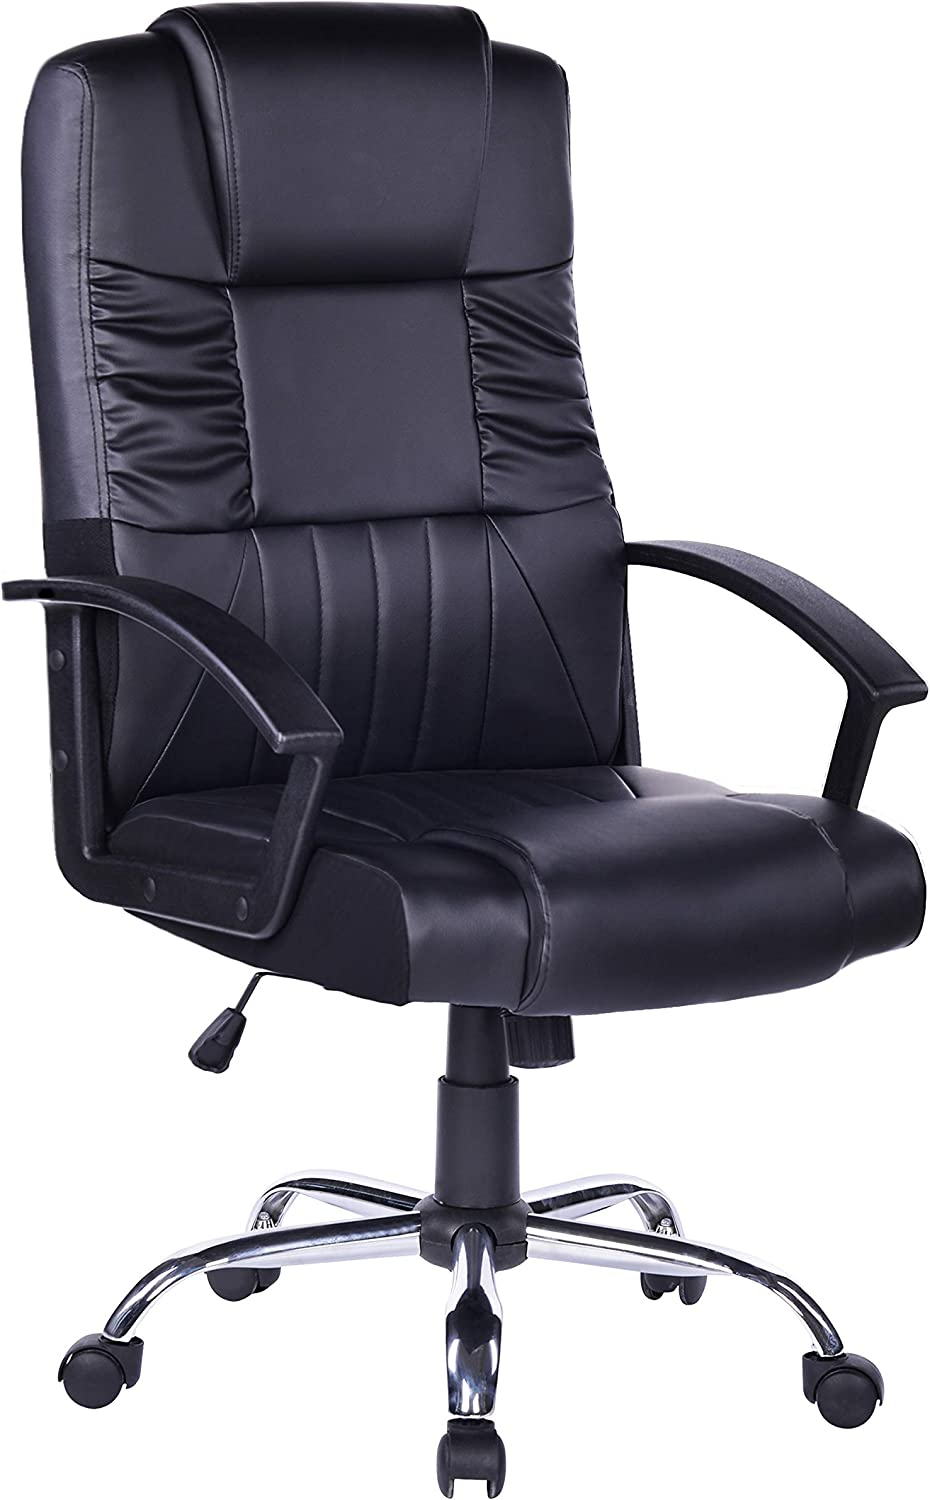 Bosmiller Home Office Chair High Back Adjustable Managerial Home Desk Chair,Swivel Computer PU Leather Chair with Lumbar Support (Black) (411Black)